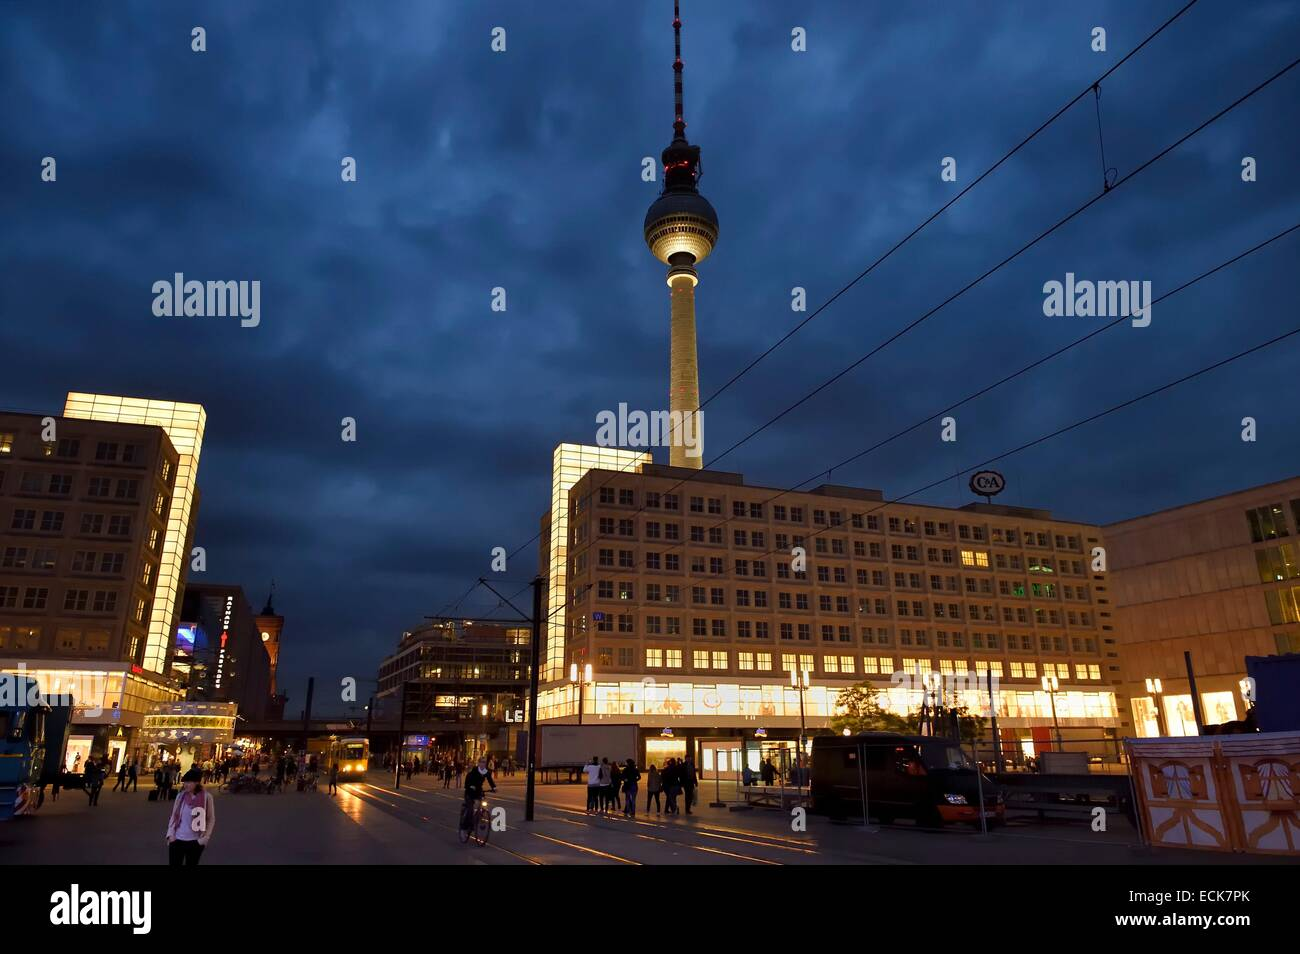 Germany, Berlin, Berlin-Mitte, Alexanderplatz and the TV tower - Stock Image